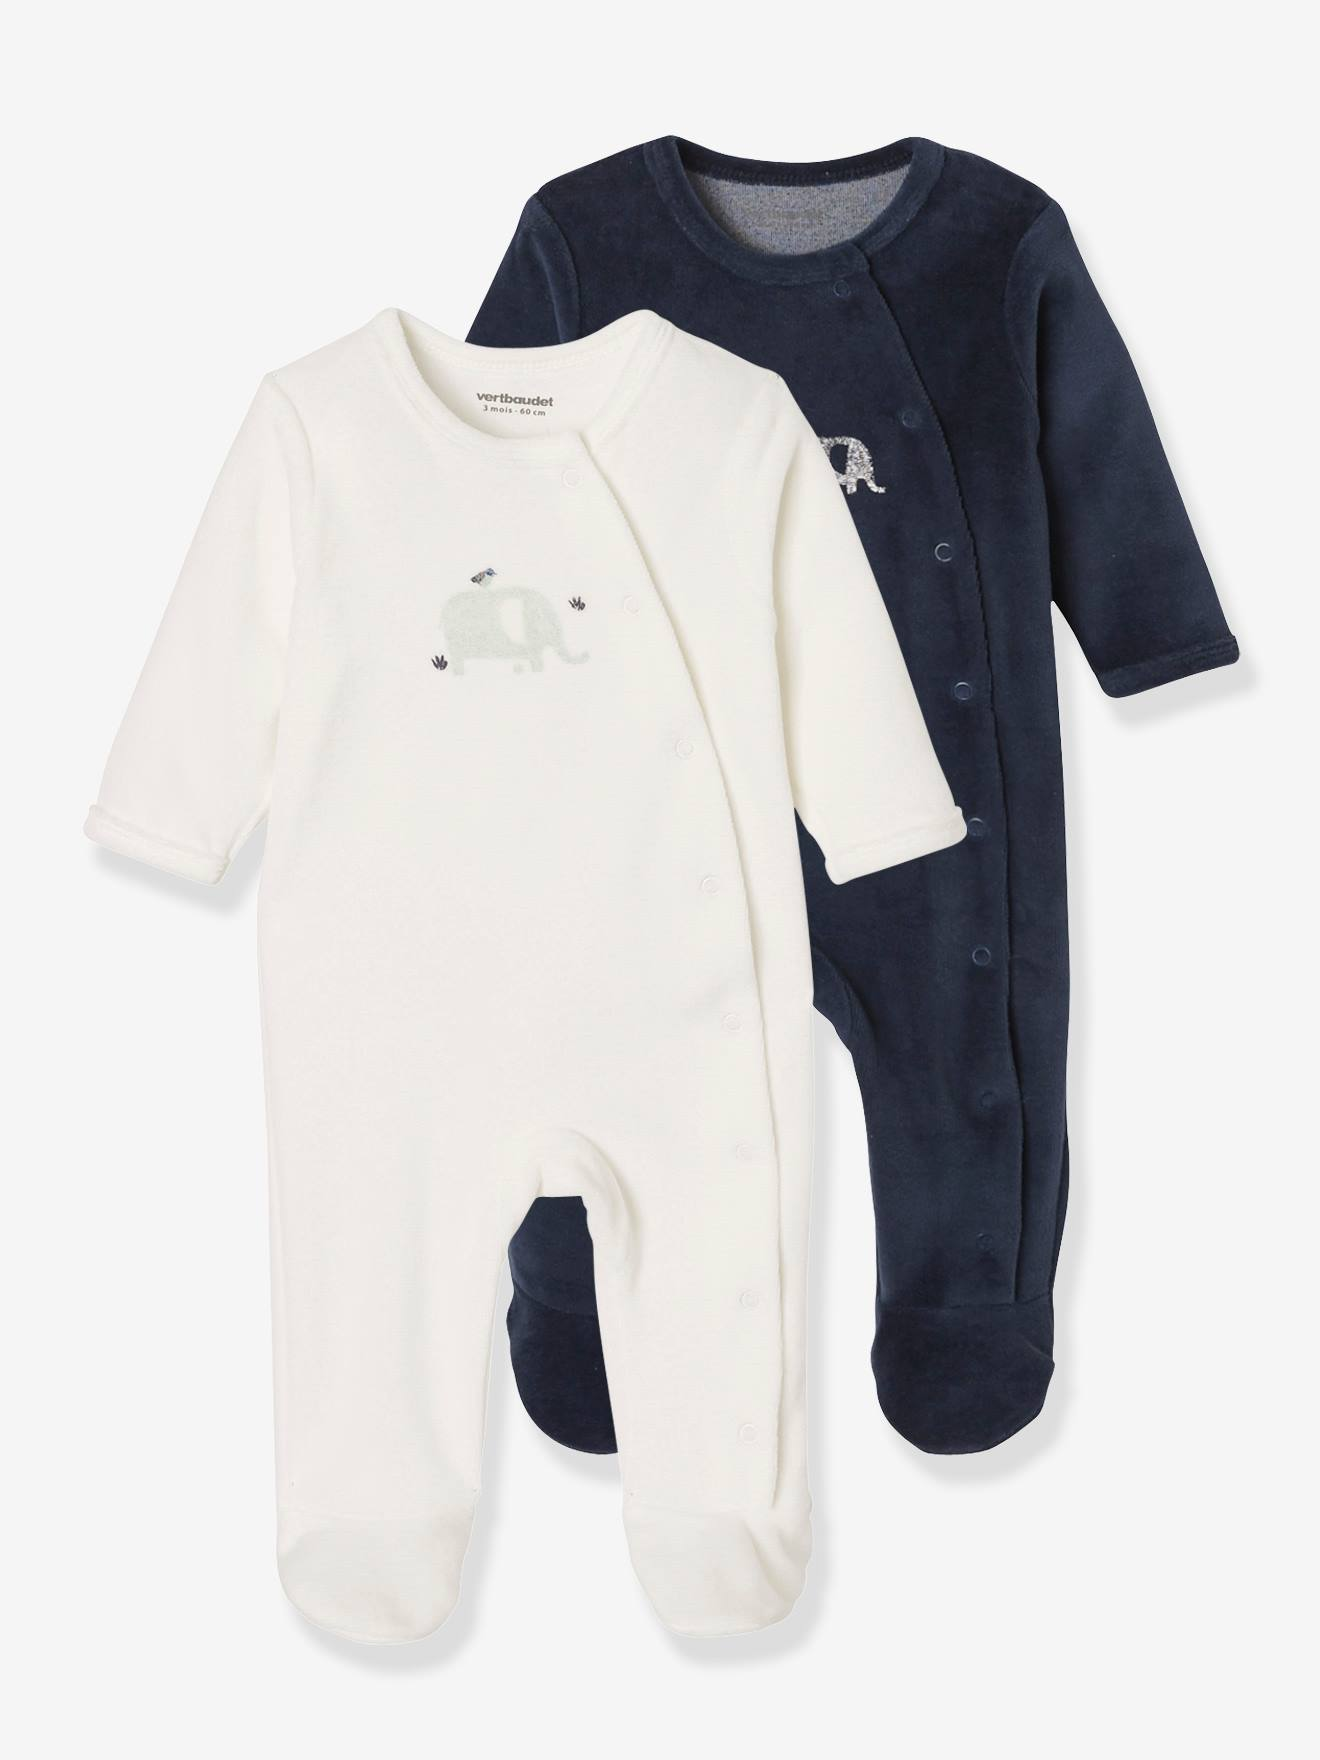 Pack of 7 Velour Sleepsuits for Newborn Babies, Front Opening - blue dark  solid with design